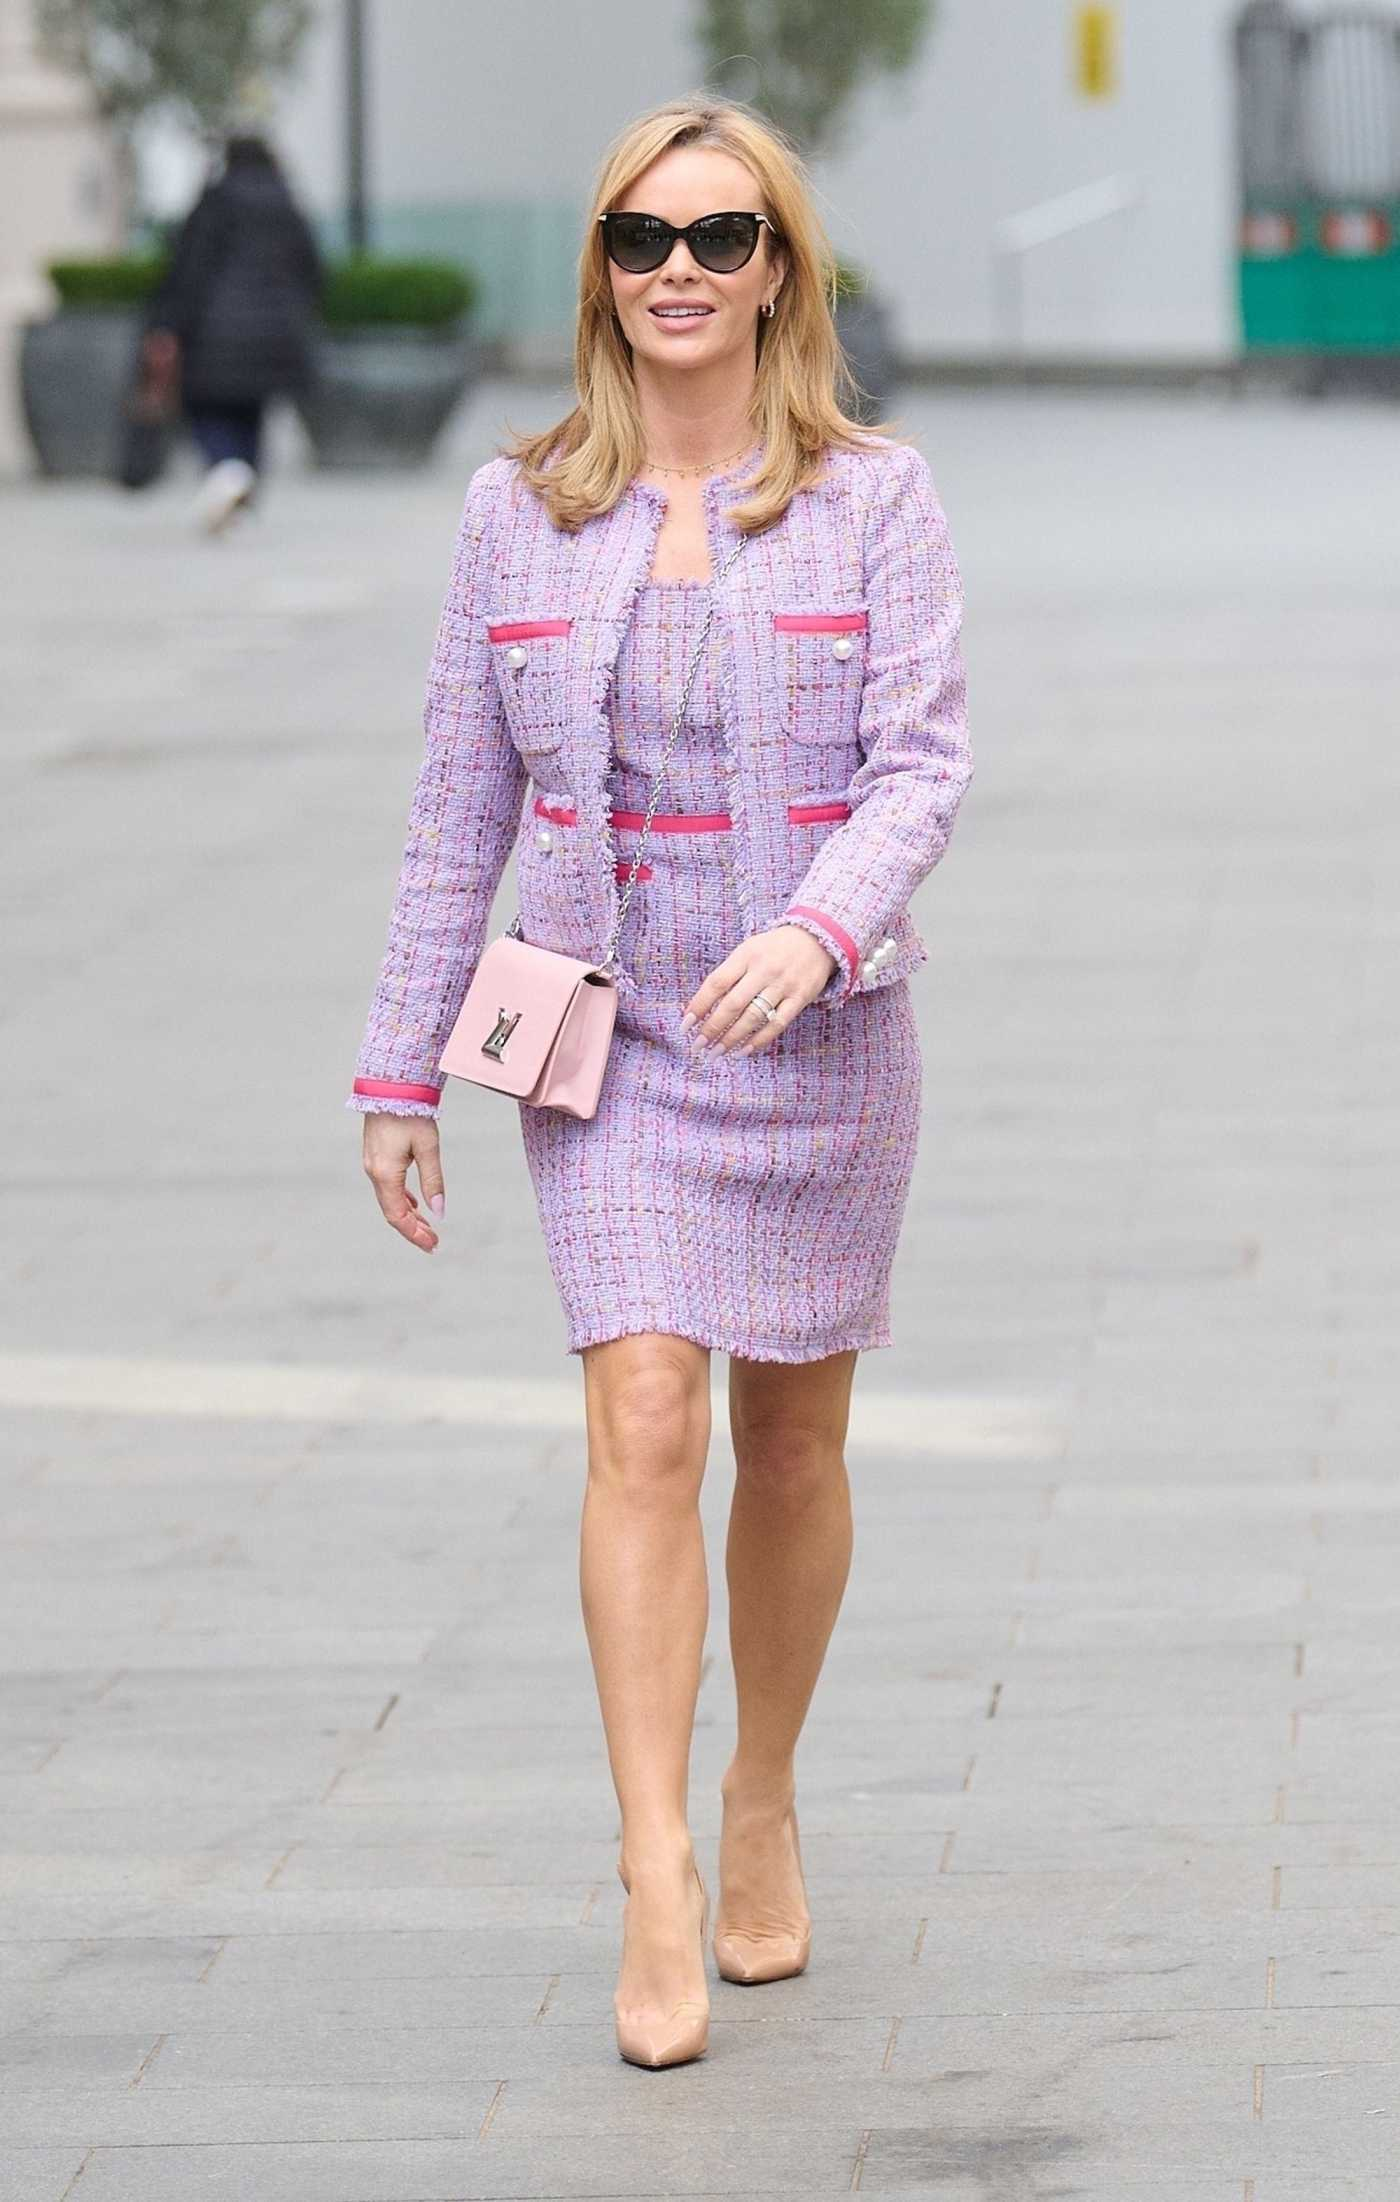 Amanda Holden in a Lilak Suit Leaves the Global Radio Studios in London 03/15/2021